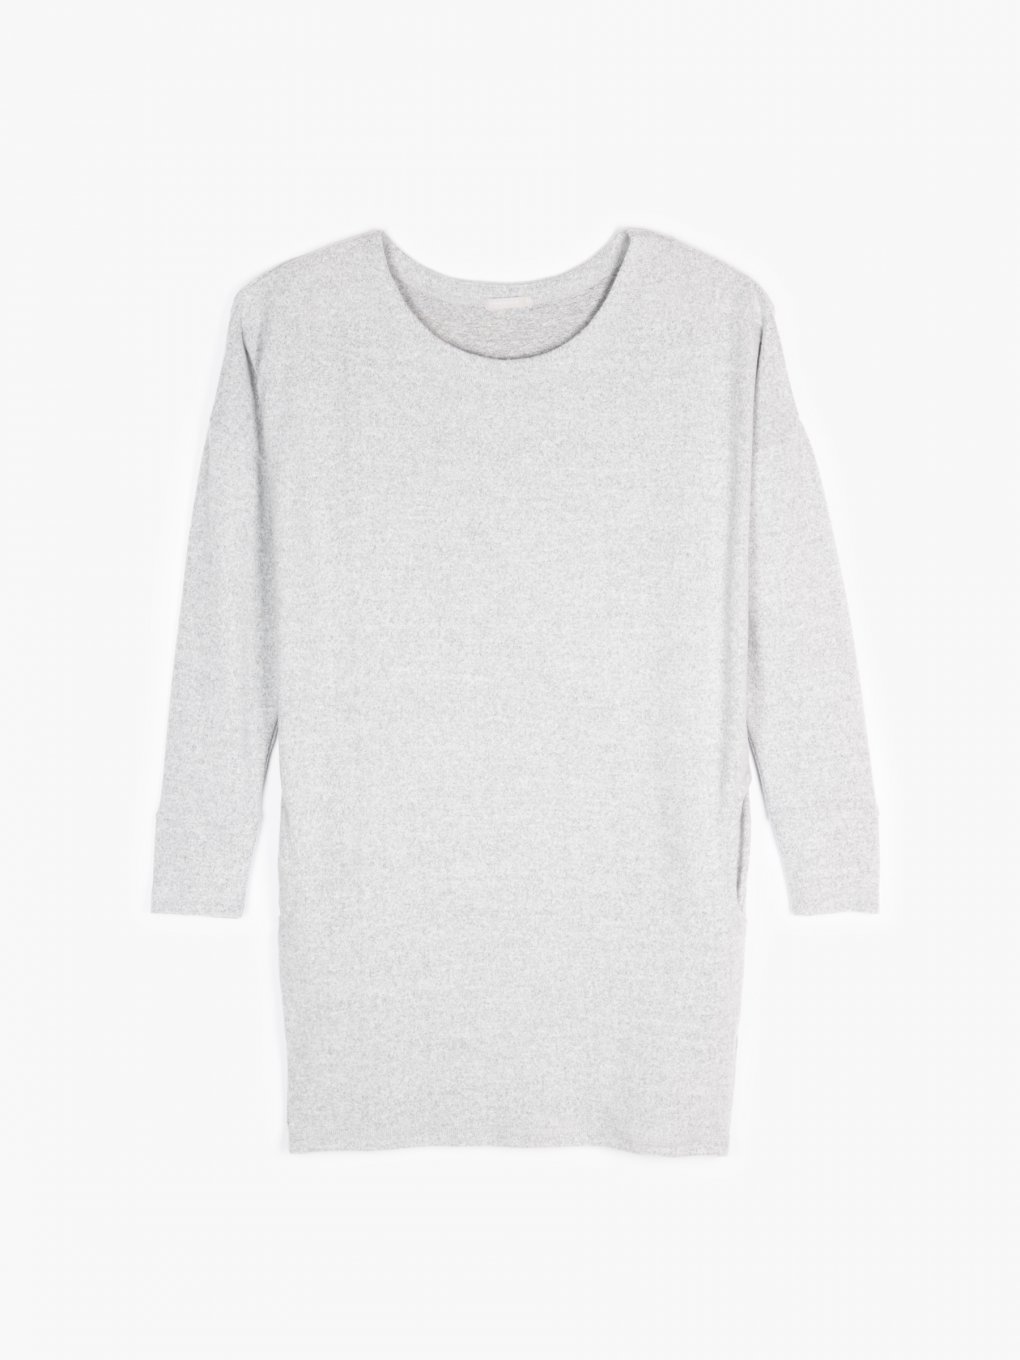 Plain longline jumper with pockets